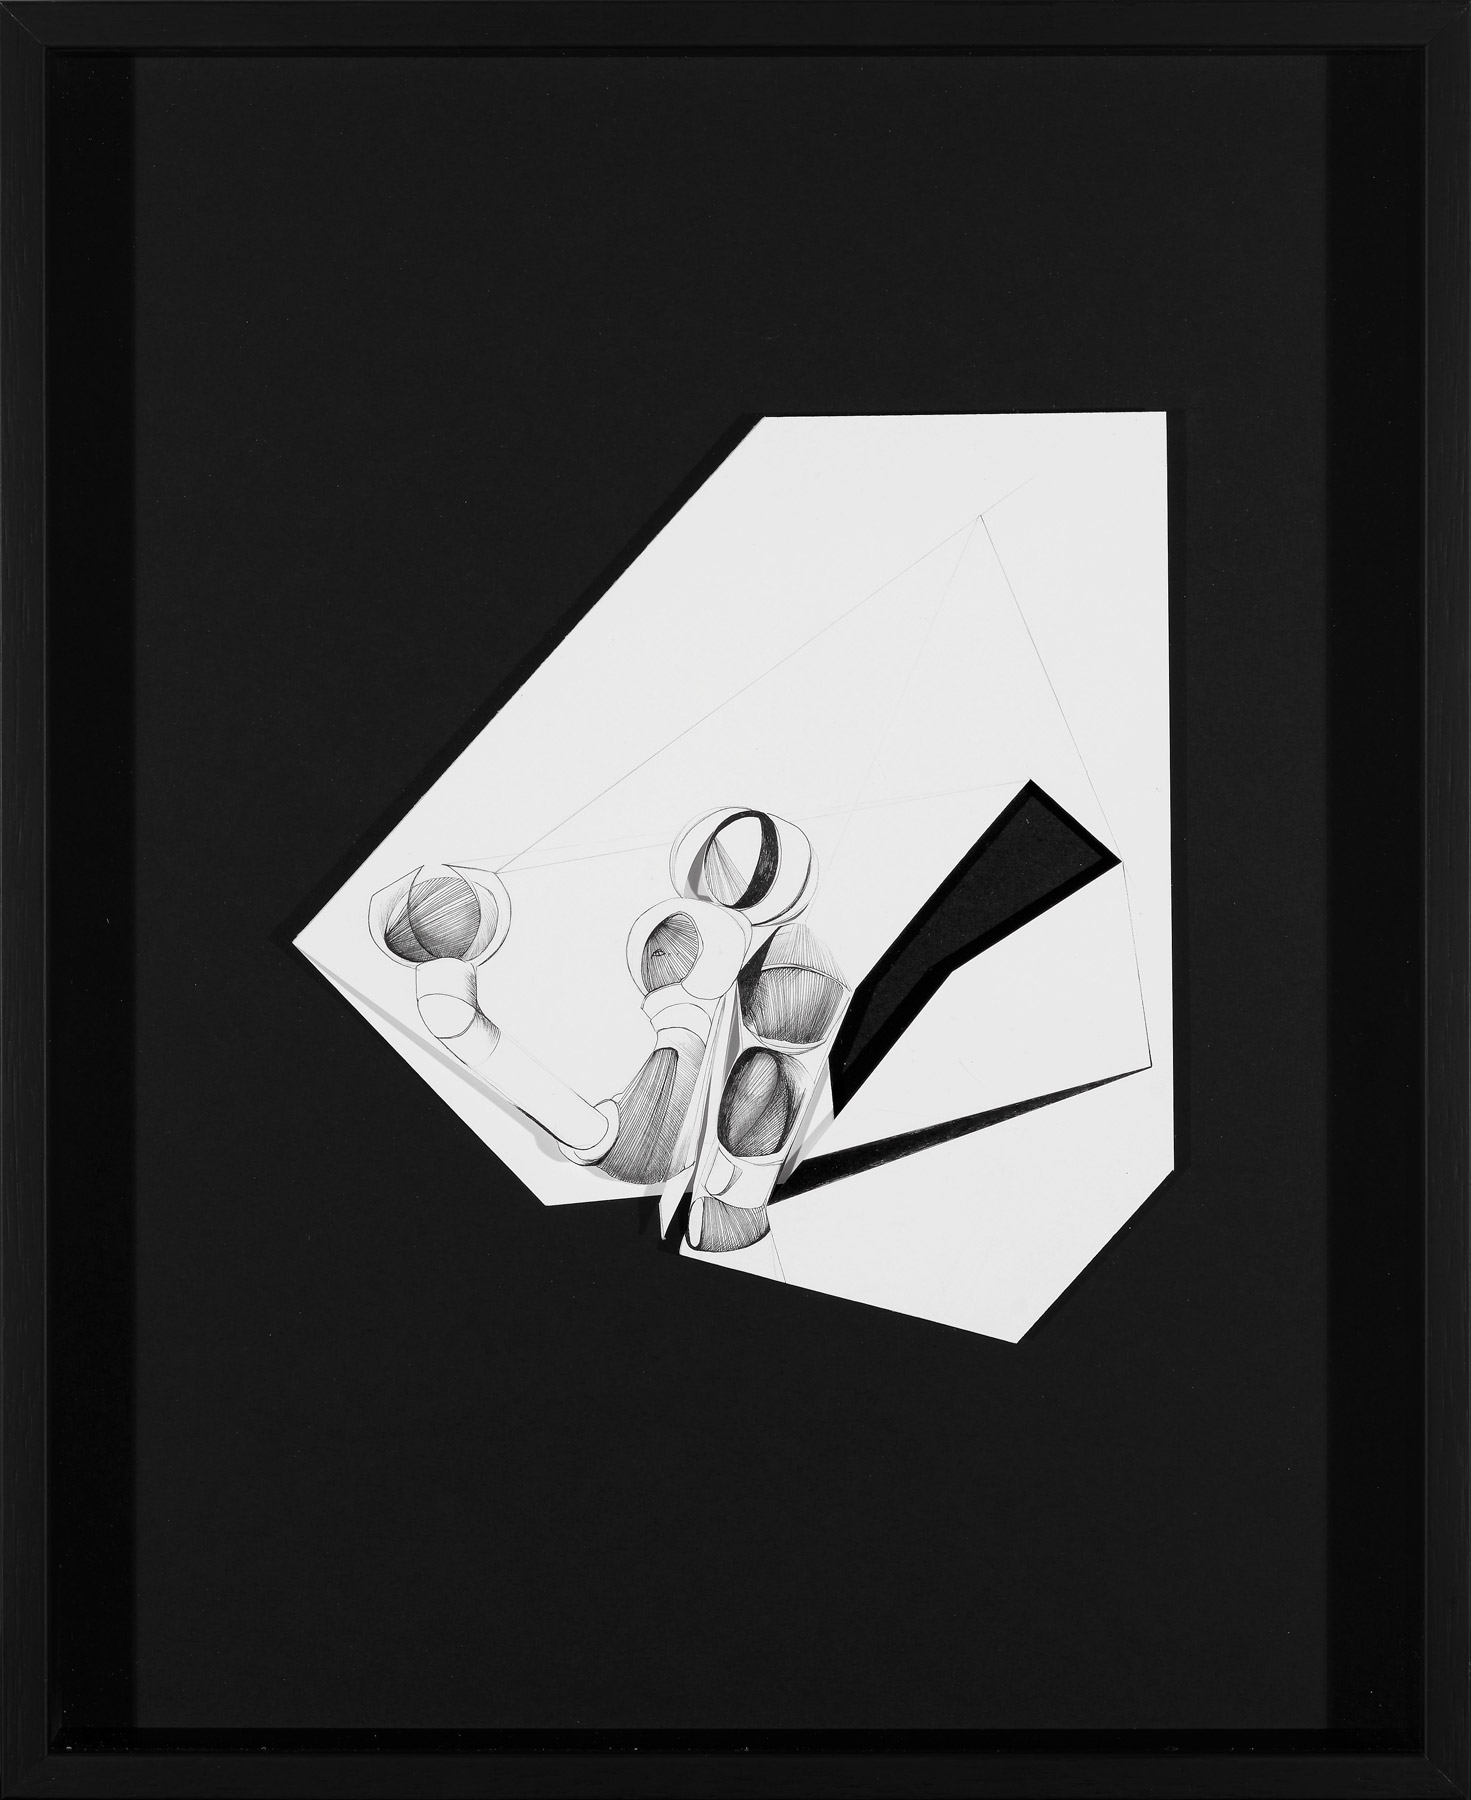 Nina Annabelle Märkl | Fragmented fiction II| Ink on folded paper cut outs | 41 x 33 cm | 2015 | photo: Walter Bayer